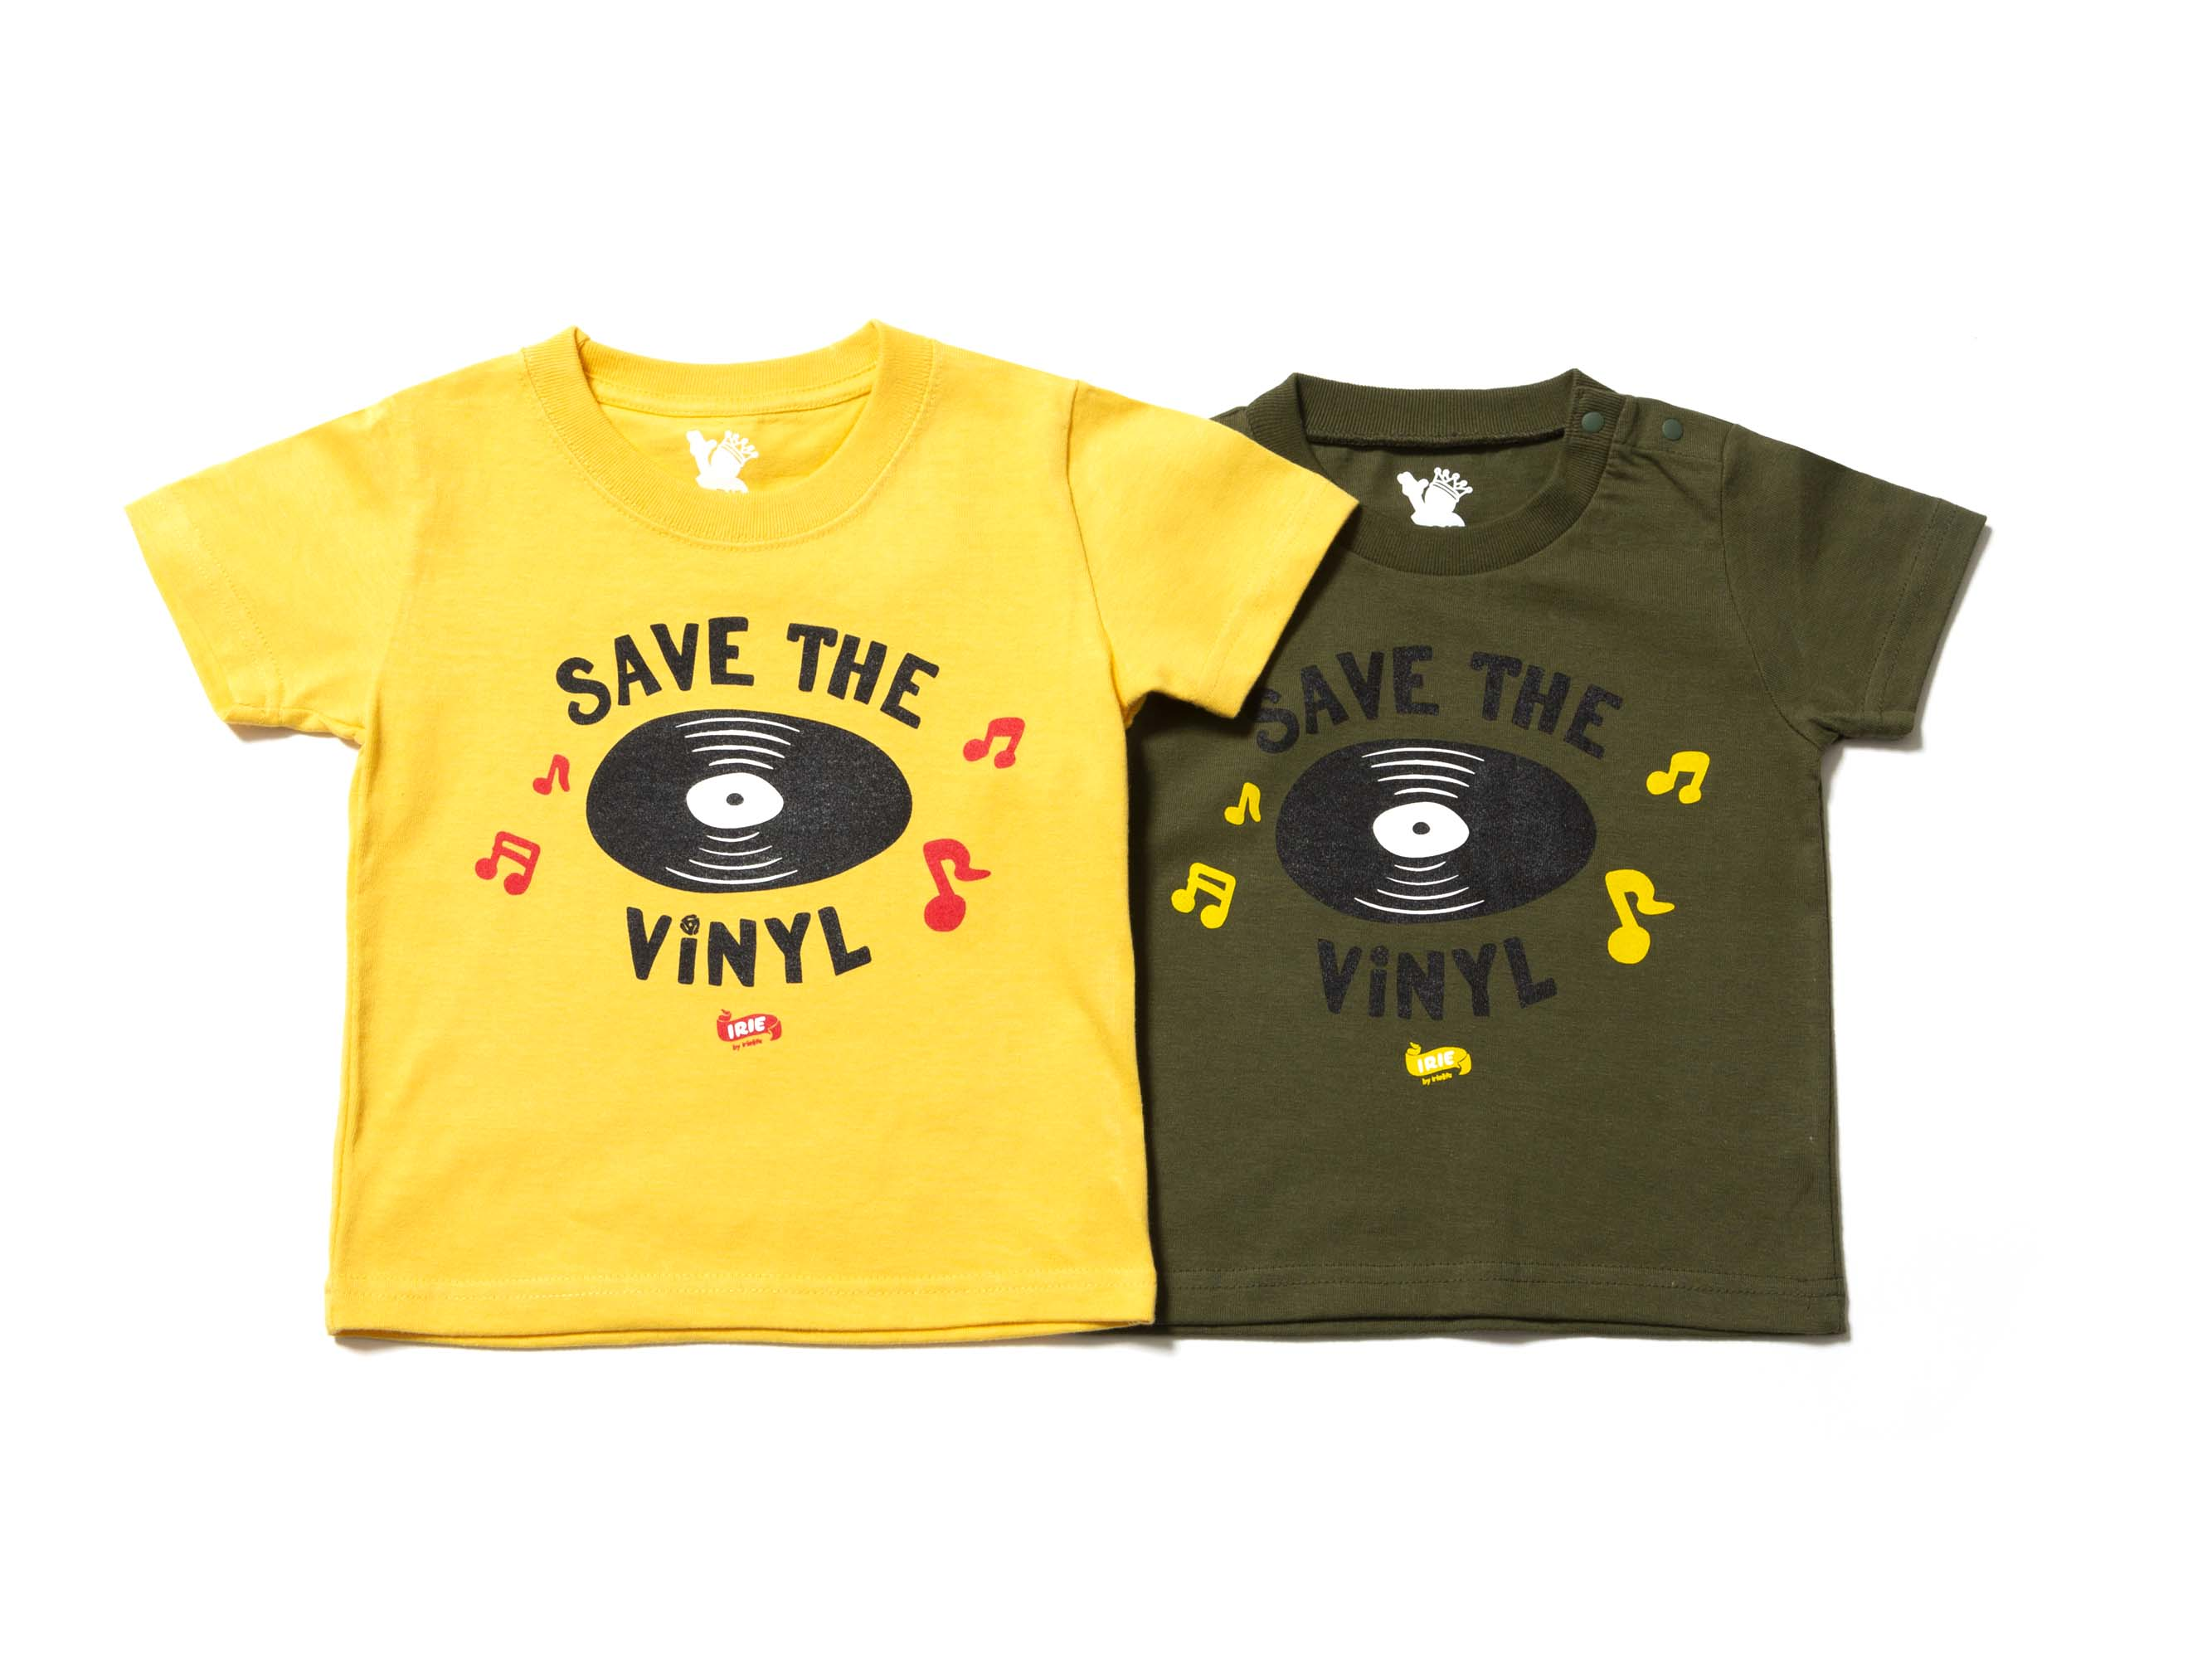 【20% OFF】SAVE THE VINYL KIDS TEE - IRIE KIDS